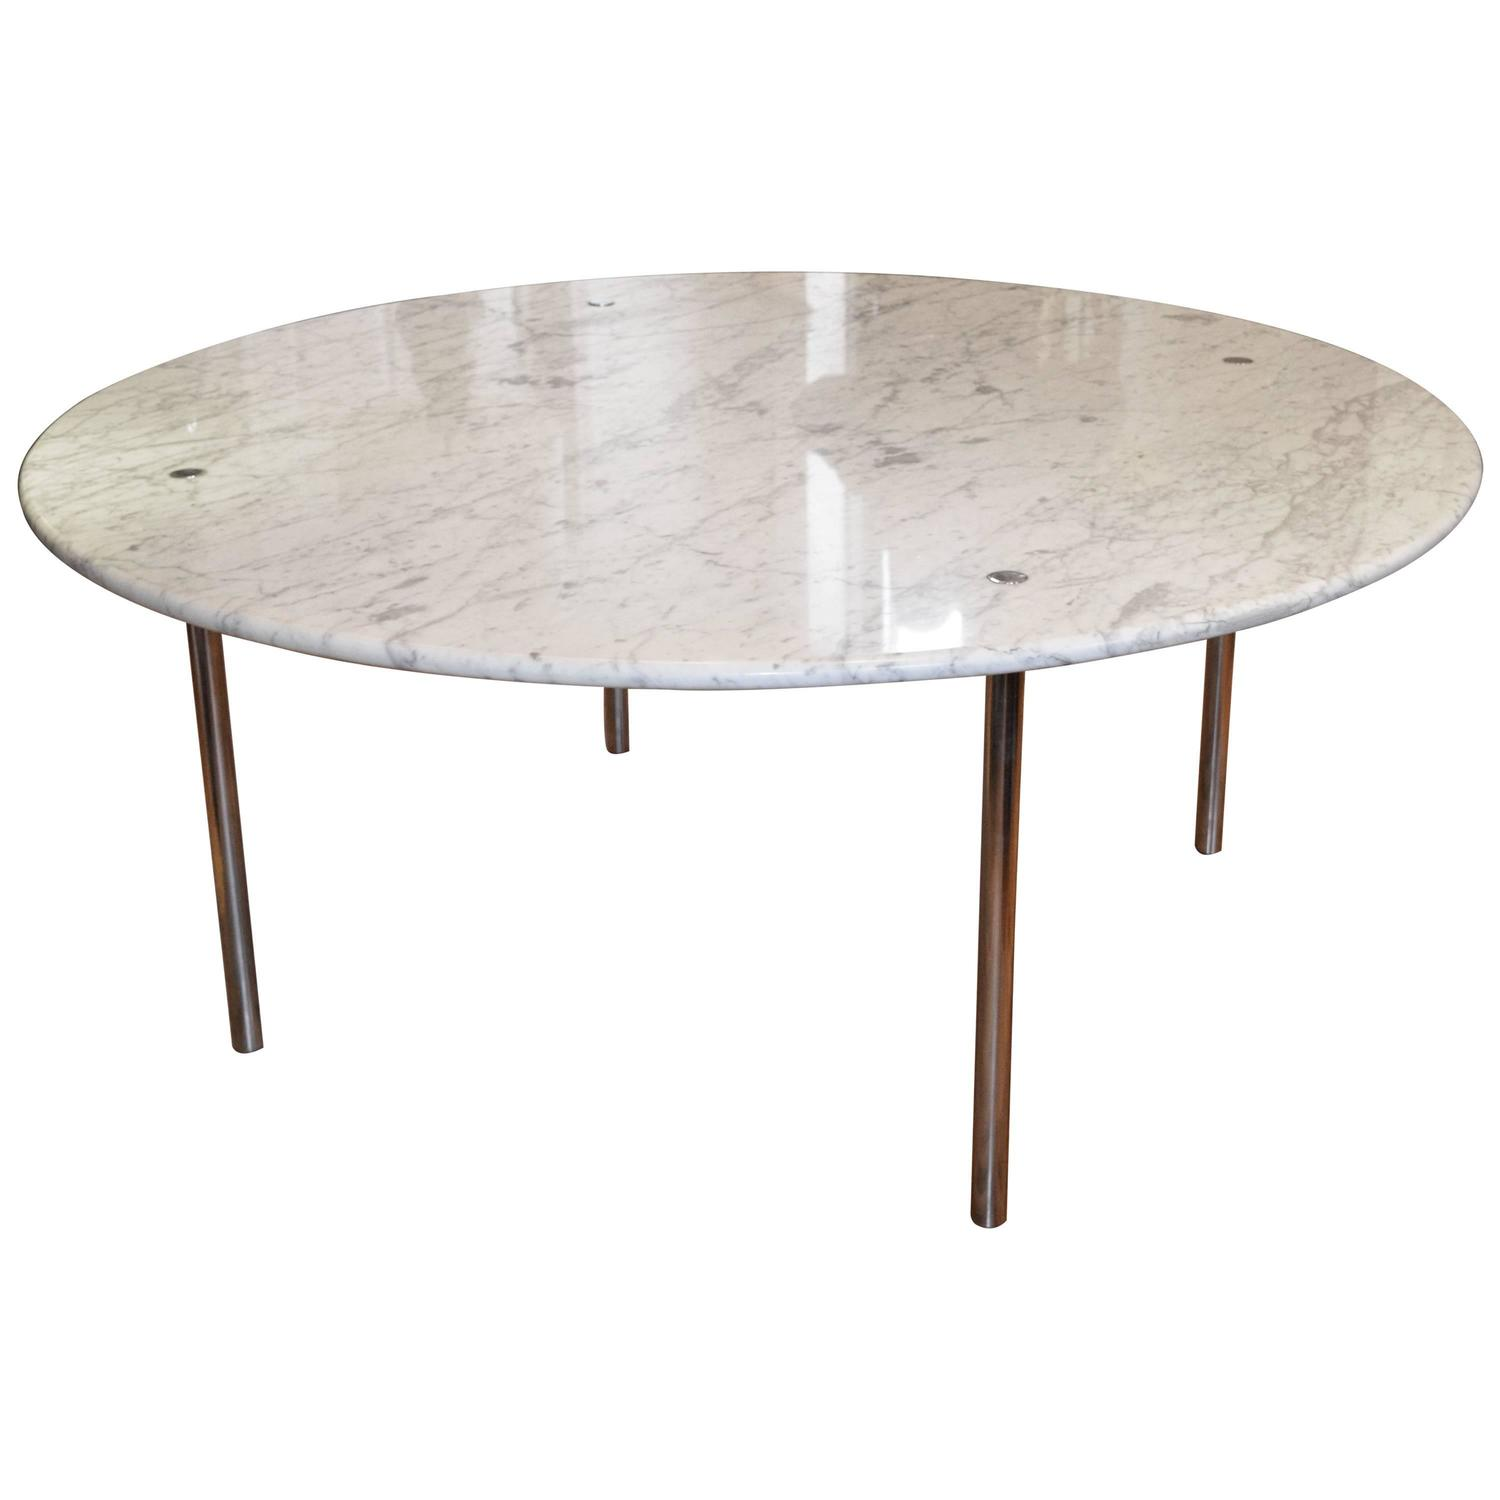 Monumental round marble dining table by katavolos littell for Marble dining room table